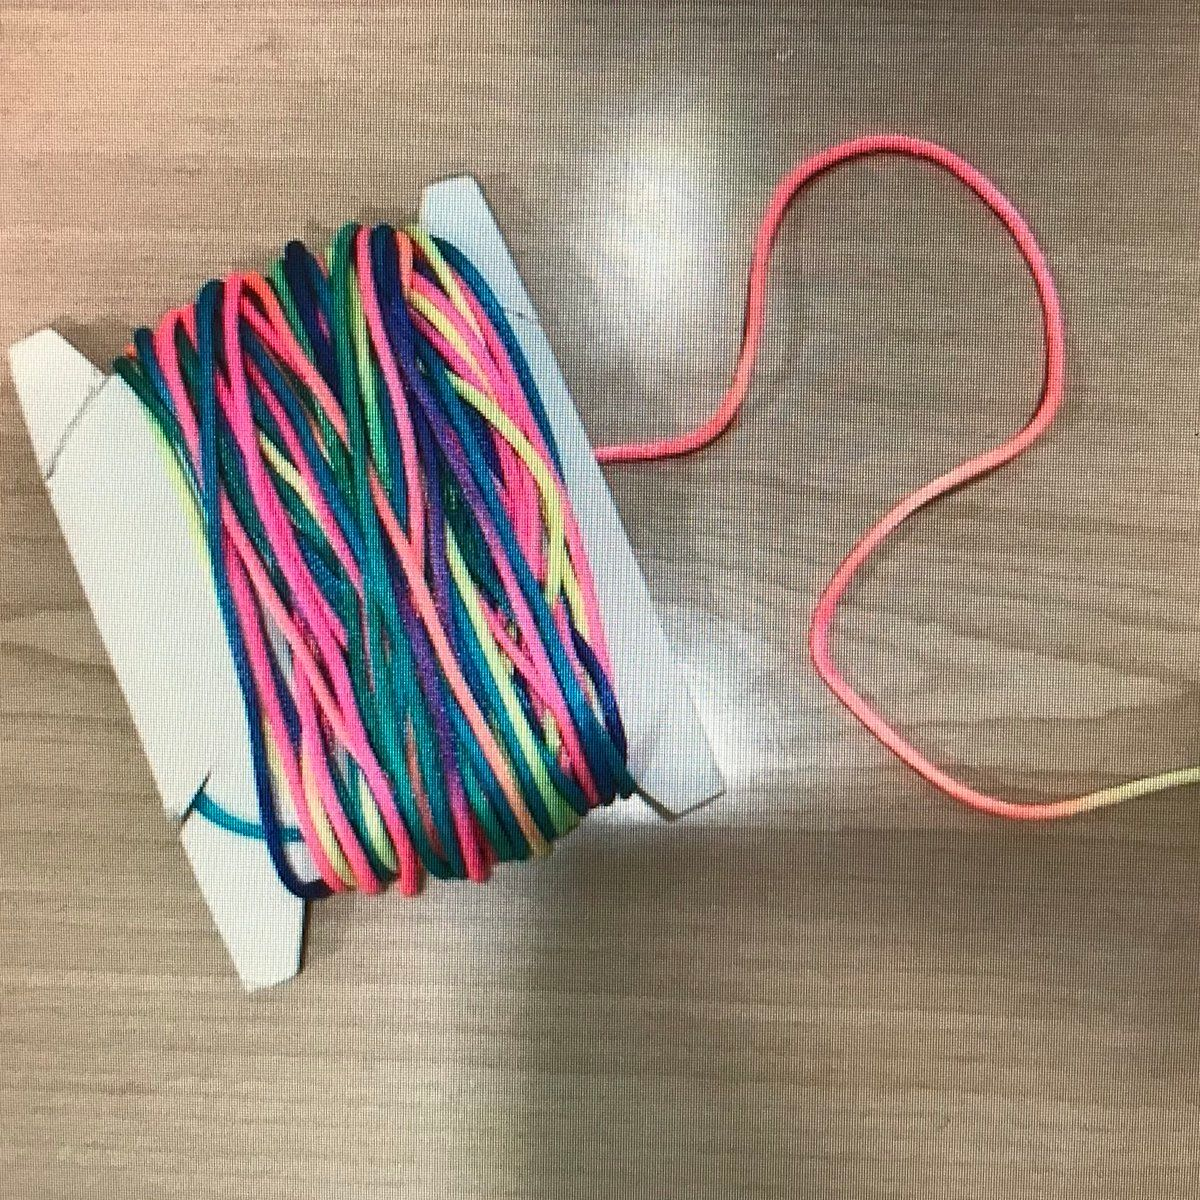 Hospital Worker Shares Genius Magic String Hack To Make Radiotherapy Less Frightening For